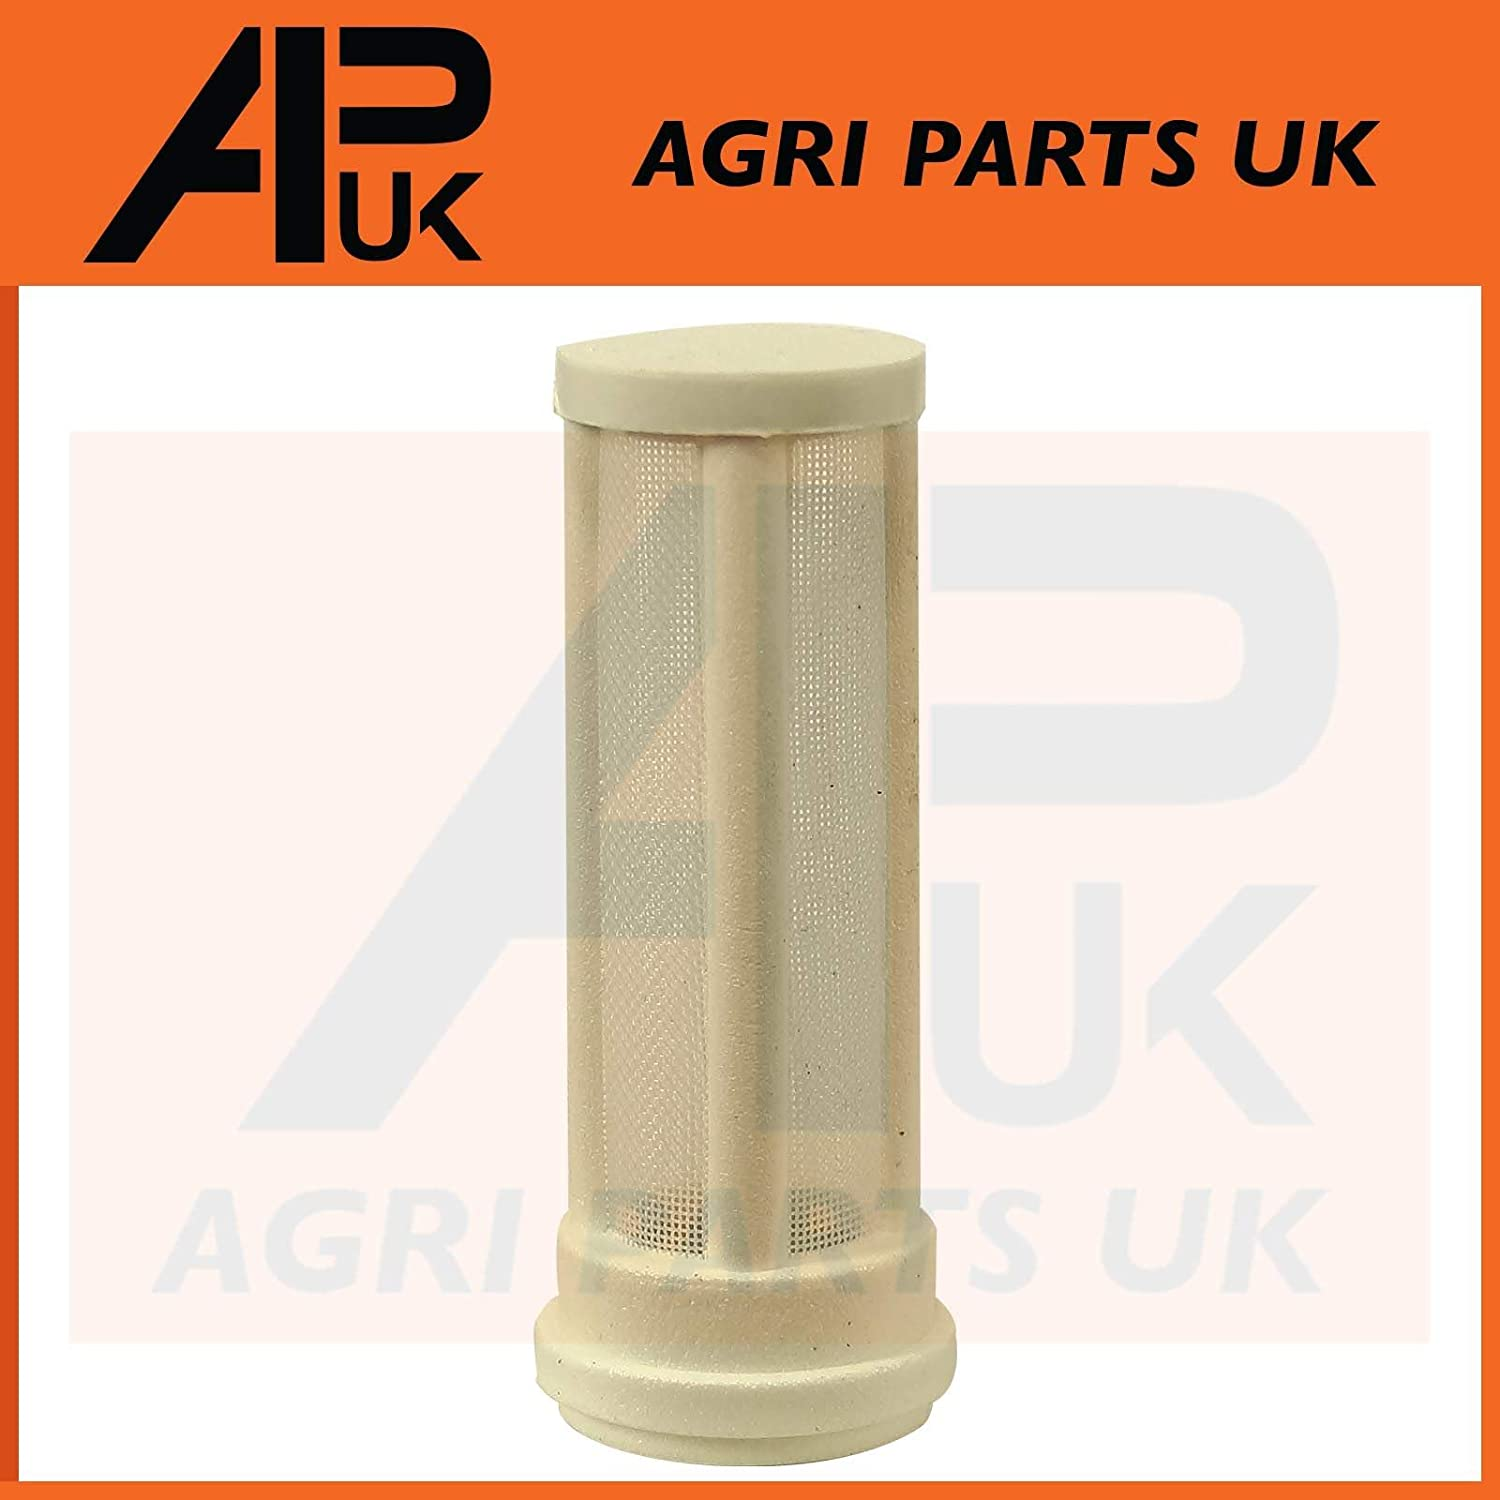 APUK 5x Fuel Tap Filter Gauze compatible with Massey Ferguson 35 35X 135 140 285 2725 Tractor